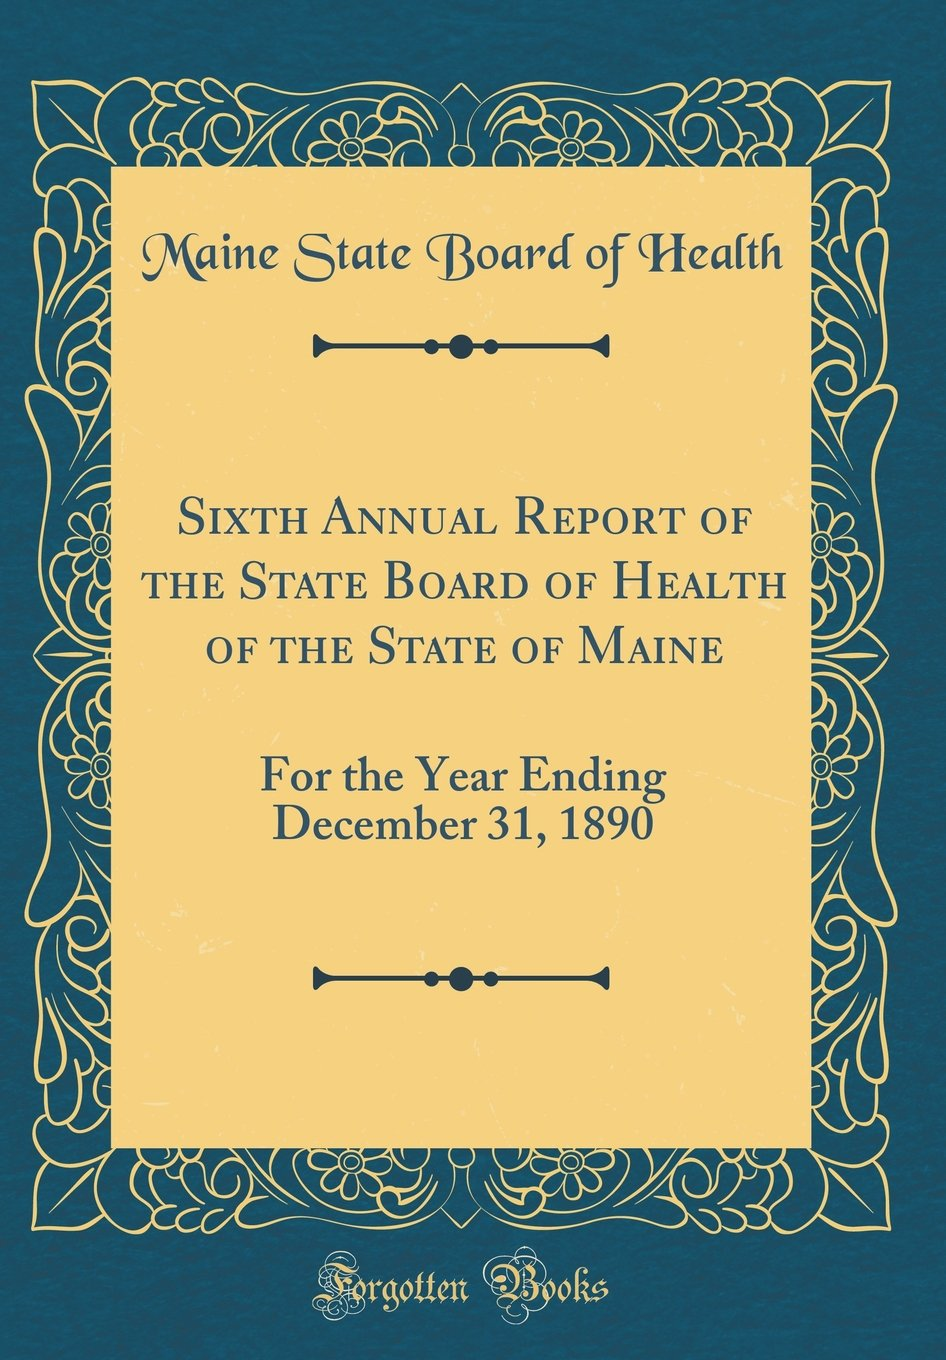 Sixth Annual Report of the State Board of Health of the State of Maine: For the Year Ending December 31, 1890 (Classic Reprint) pdf